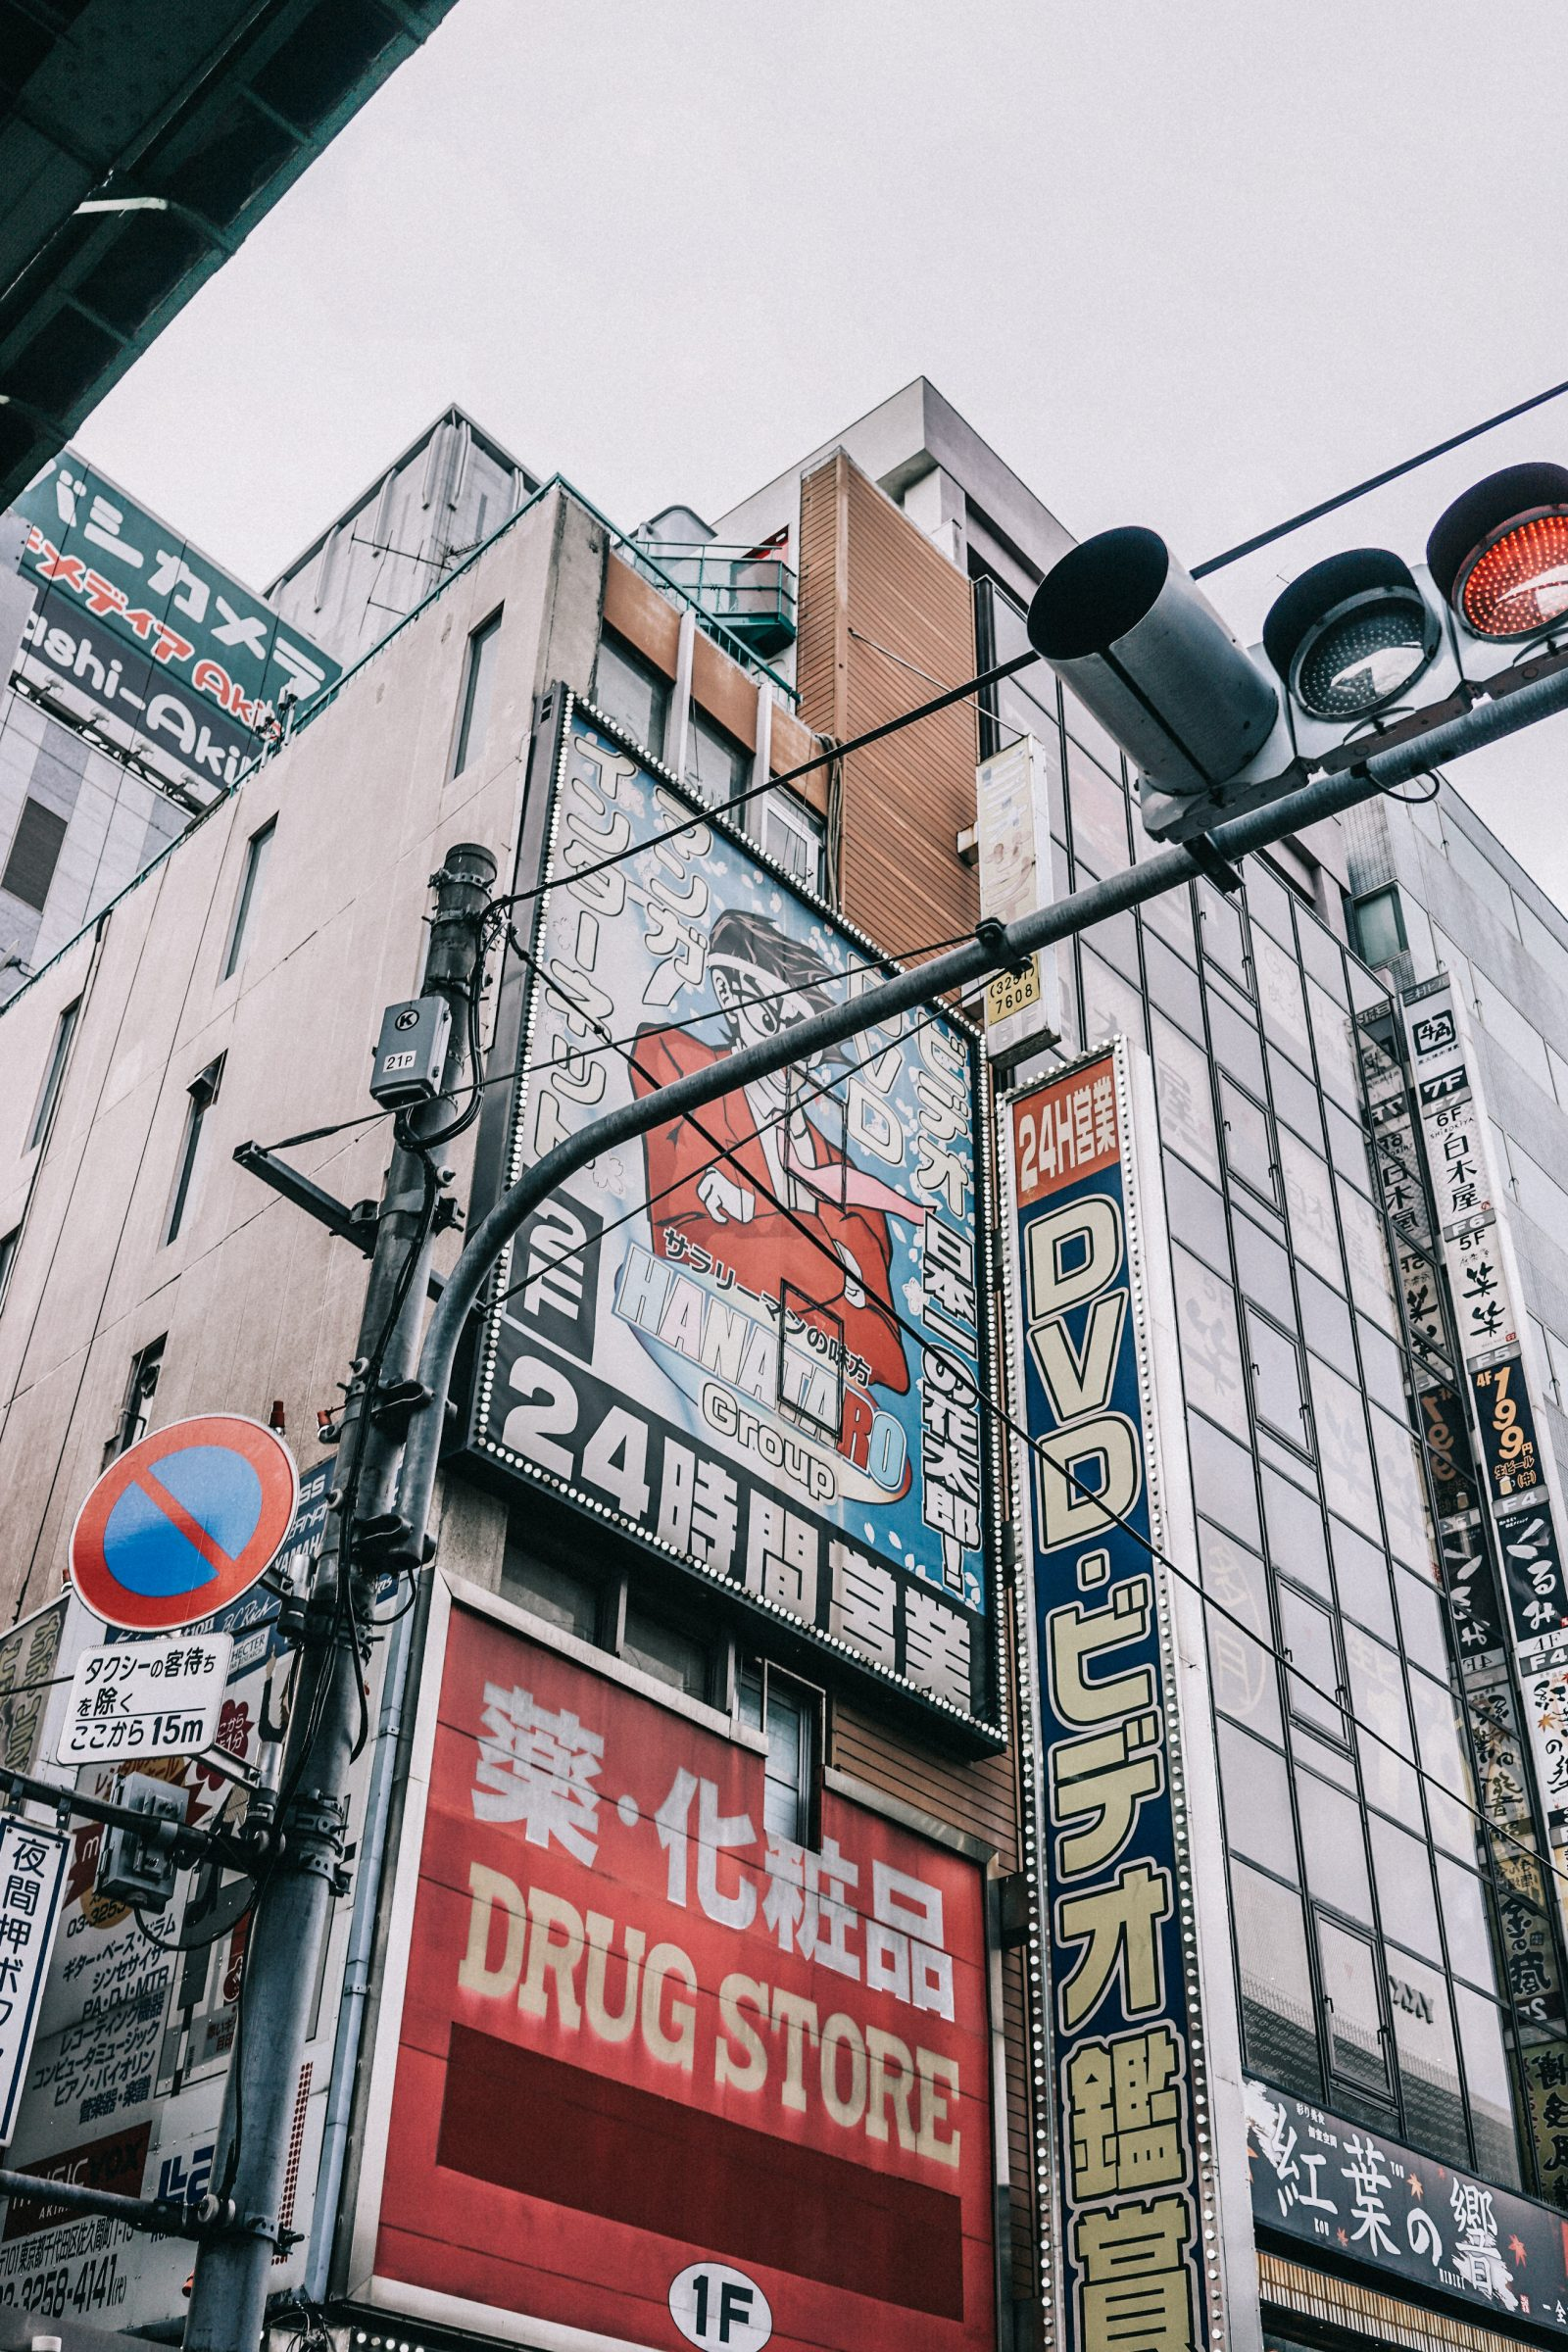 tokyo_travel_guide-outfit-collage_vintage-street_style-lovers_and_friends_jumpsuit-white_outfit-espadrilles-backpack-levis_denim_jacket-akihabara-116